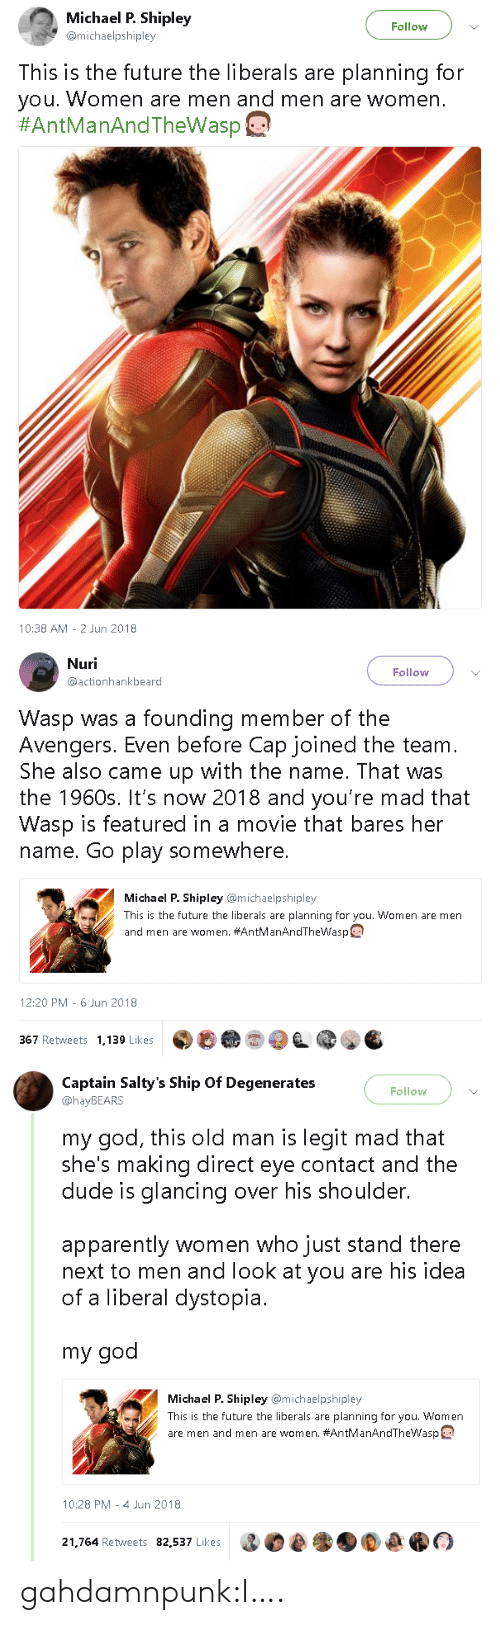 Founding Member: Michael P. Shipley  @michaelpshipley  Follow  This is the future the liberals are planning for  you. Women are men and men are women  #AntManAndTheWasp@  10:38 AM -2 Jun 2018   Nuri  @actionhankbeard  Follow  Wasp was a founding member of the  Avengers. Even before Cap joined the team  She also came up with the name. That was  the 1960s. It's now 2018 and you're mad that  Wasp is featured in a movie that bares her  name. Go play somewhere.  Michael P. Shipley @michaelpshipley  This is the future the liberals are planning for you. Women are men  and men are women. #AntManAndThewasp  12:20 PM-6 Jun 2018  367 Retweets 1,139 Likes   Captain Salty's Ship Of Degenerates  @hayBEARS  Follow  my god, this old man is legit mad that  she's making direct eye contact and the  dude is glancing over his shoulder.  apparently women who just stand there  next to men and look at you are his idea  of a liberal dystopia.  my god  Michael P. Shipley @michaelpshipley  This is the future the liberals are planning for you. Women  are men and men are women. #AntManAndThewasp  10:28 PM-4 Jun 2018  21.764 Retweets 82,537 Likes gahdamnpunk:I….